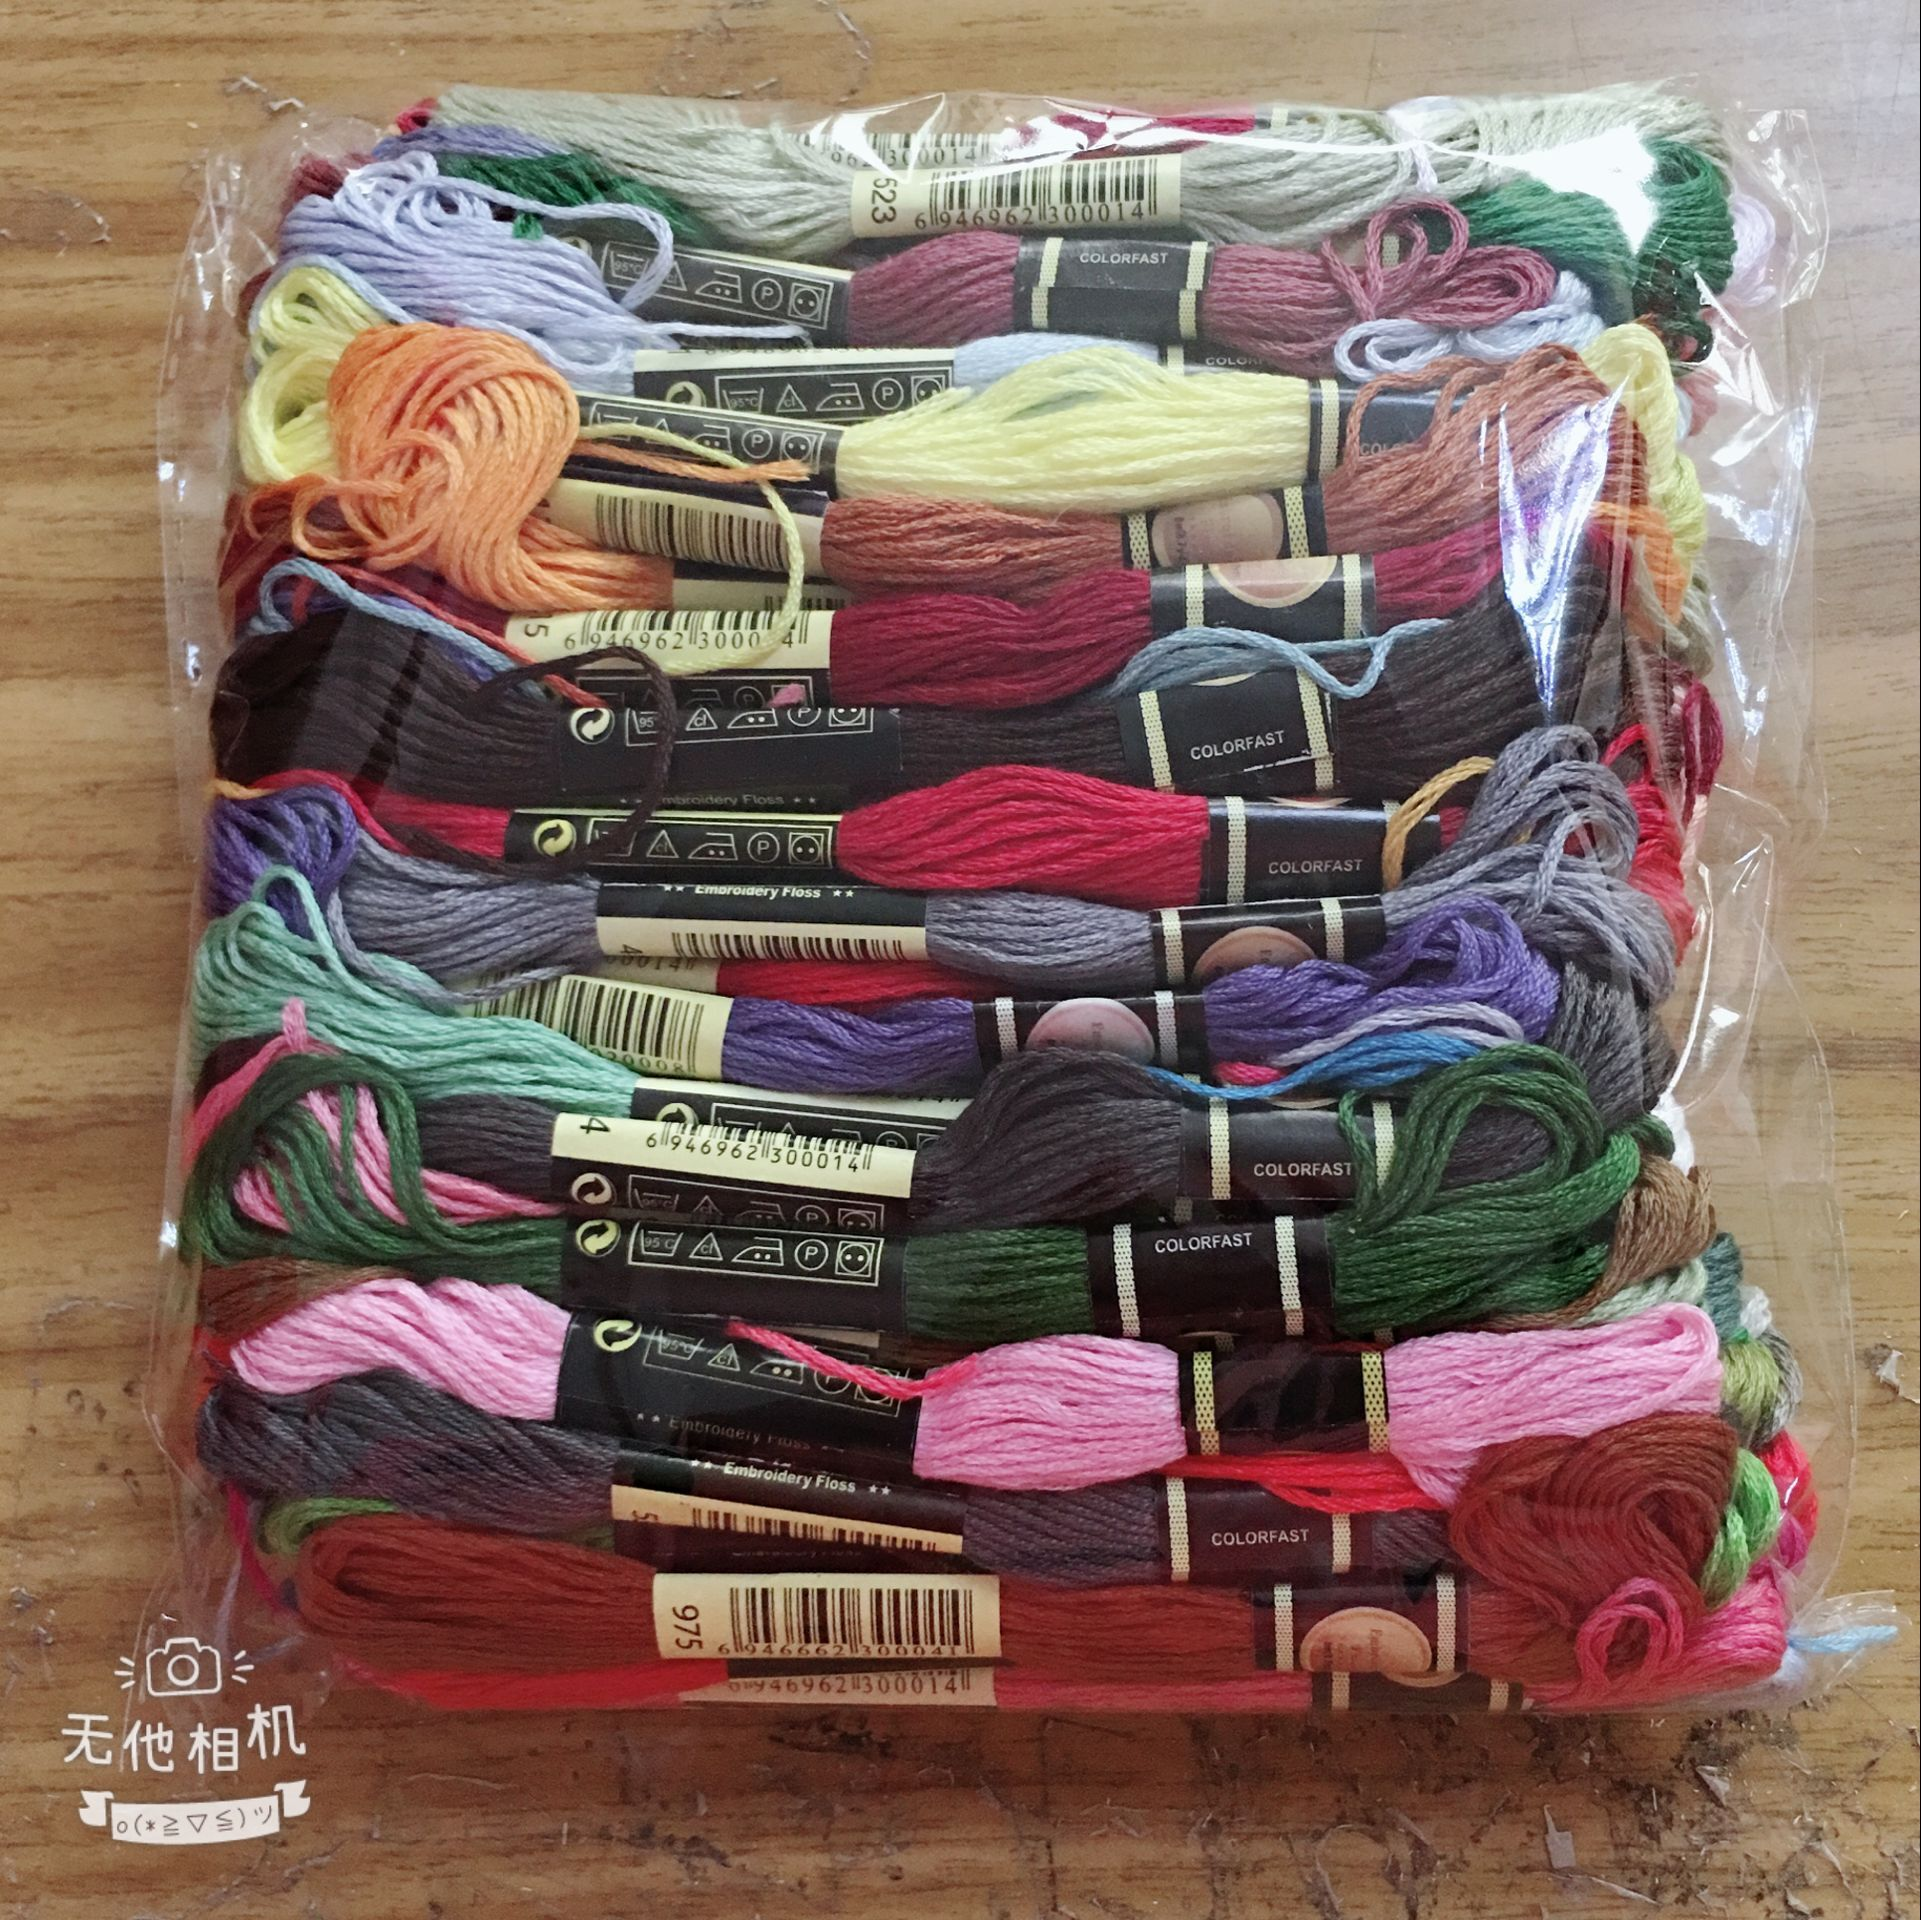 Oneroom 447 Colors Available Embroidery / Cross Stitch Floss Yarn Thread Mix Colors Or Choose Your Needed Colors